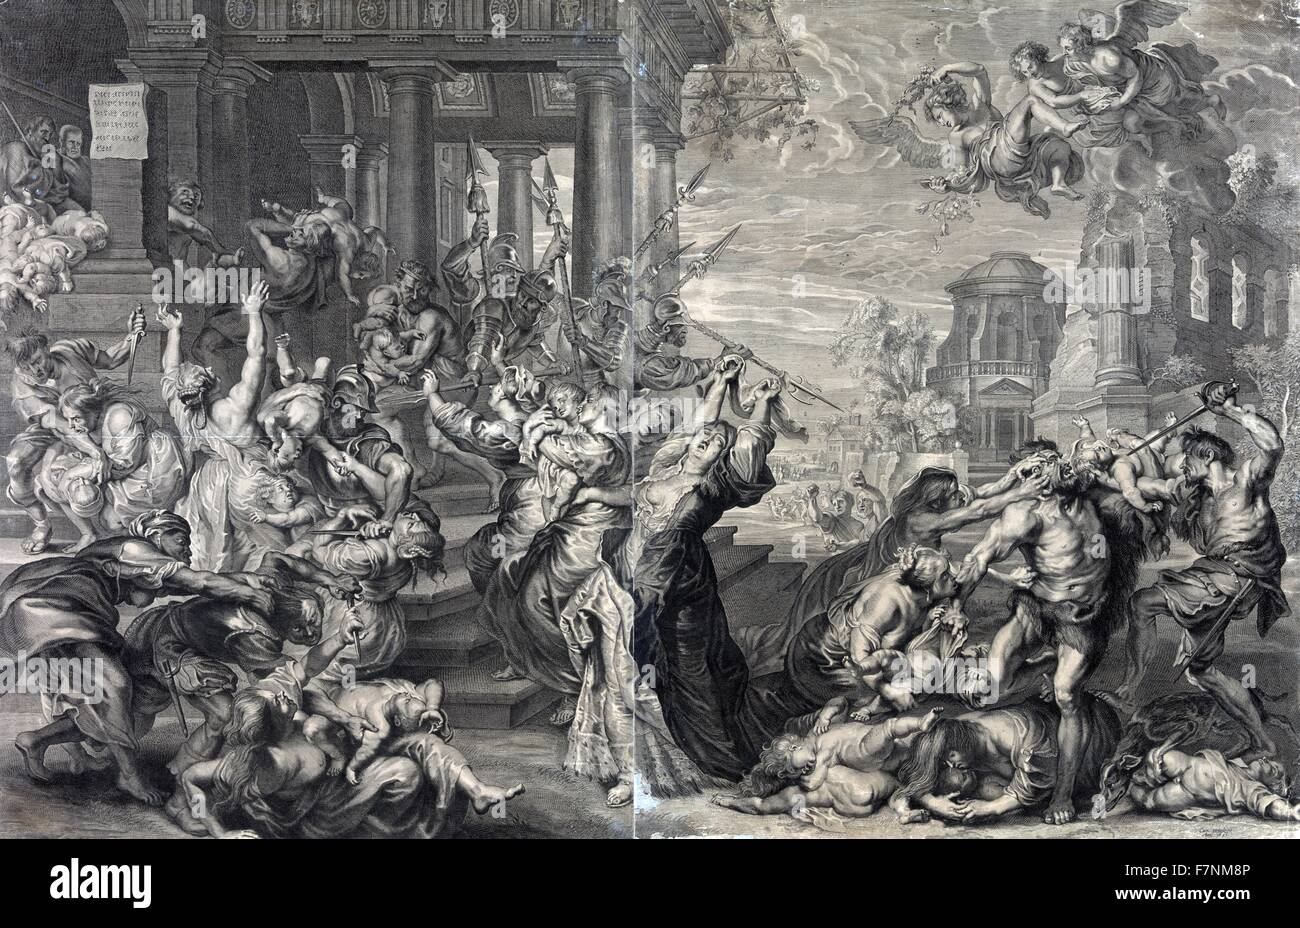 Print showing the massacre of the innocents ordered by Herod, from a 17th century perspective. Stock Photo